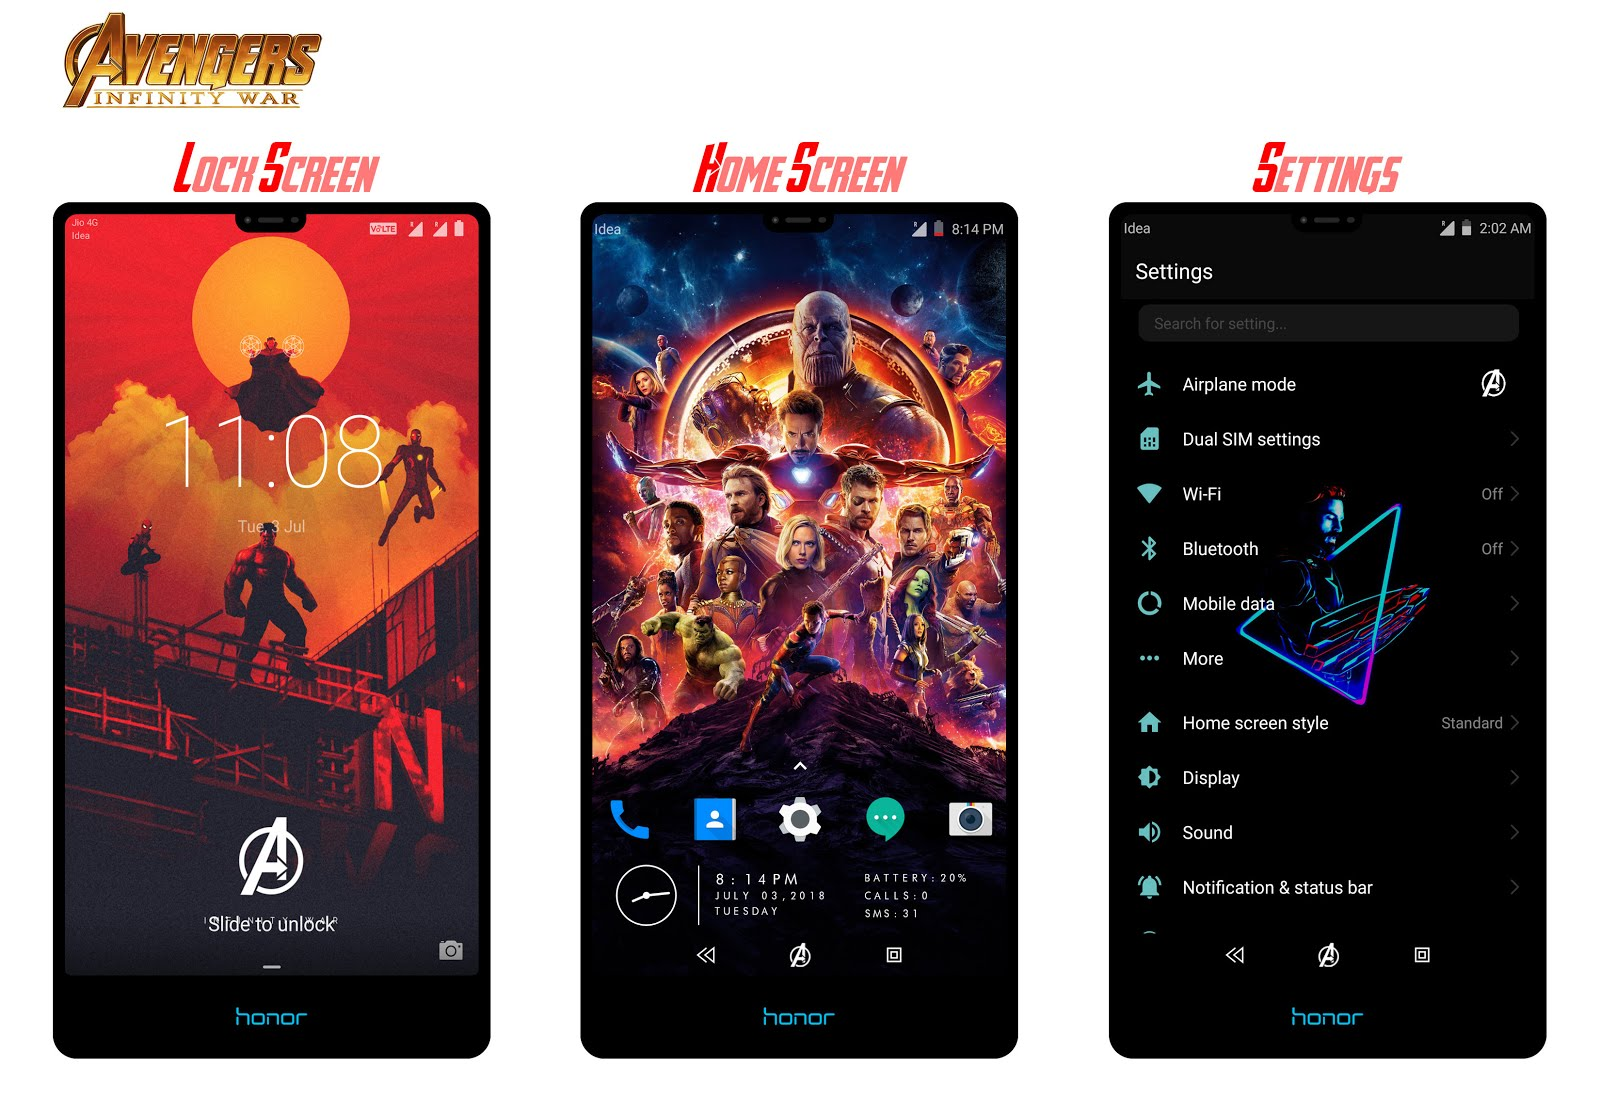 One Plus 6 Avengers Infinity War Mixed Edition for EMUI 5/8 - Emui